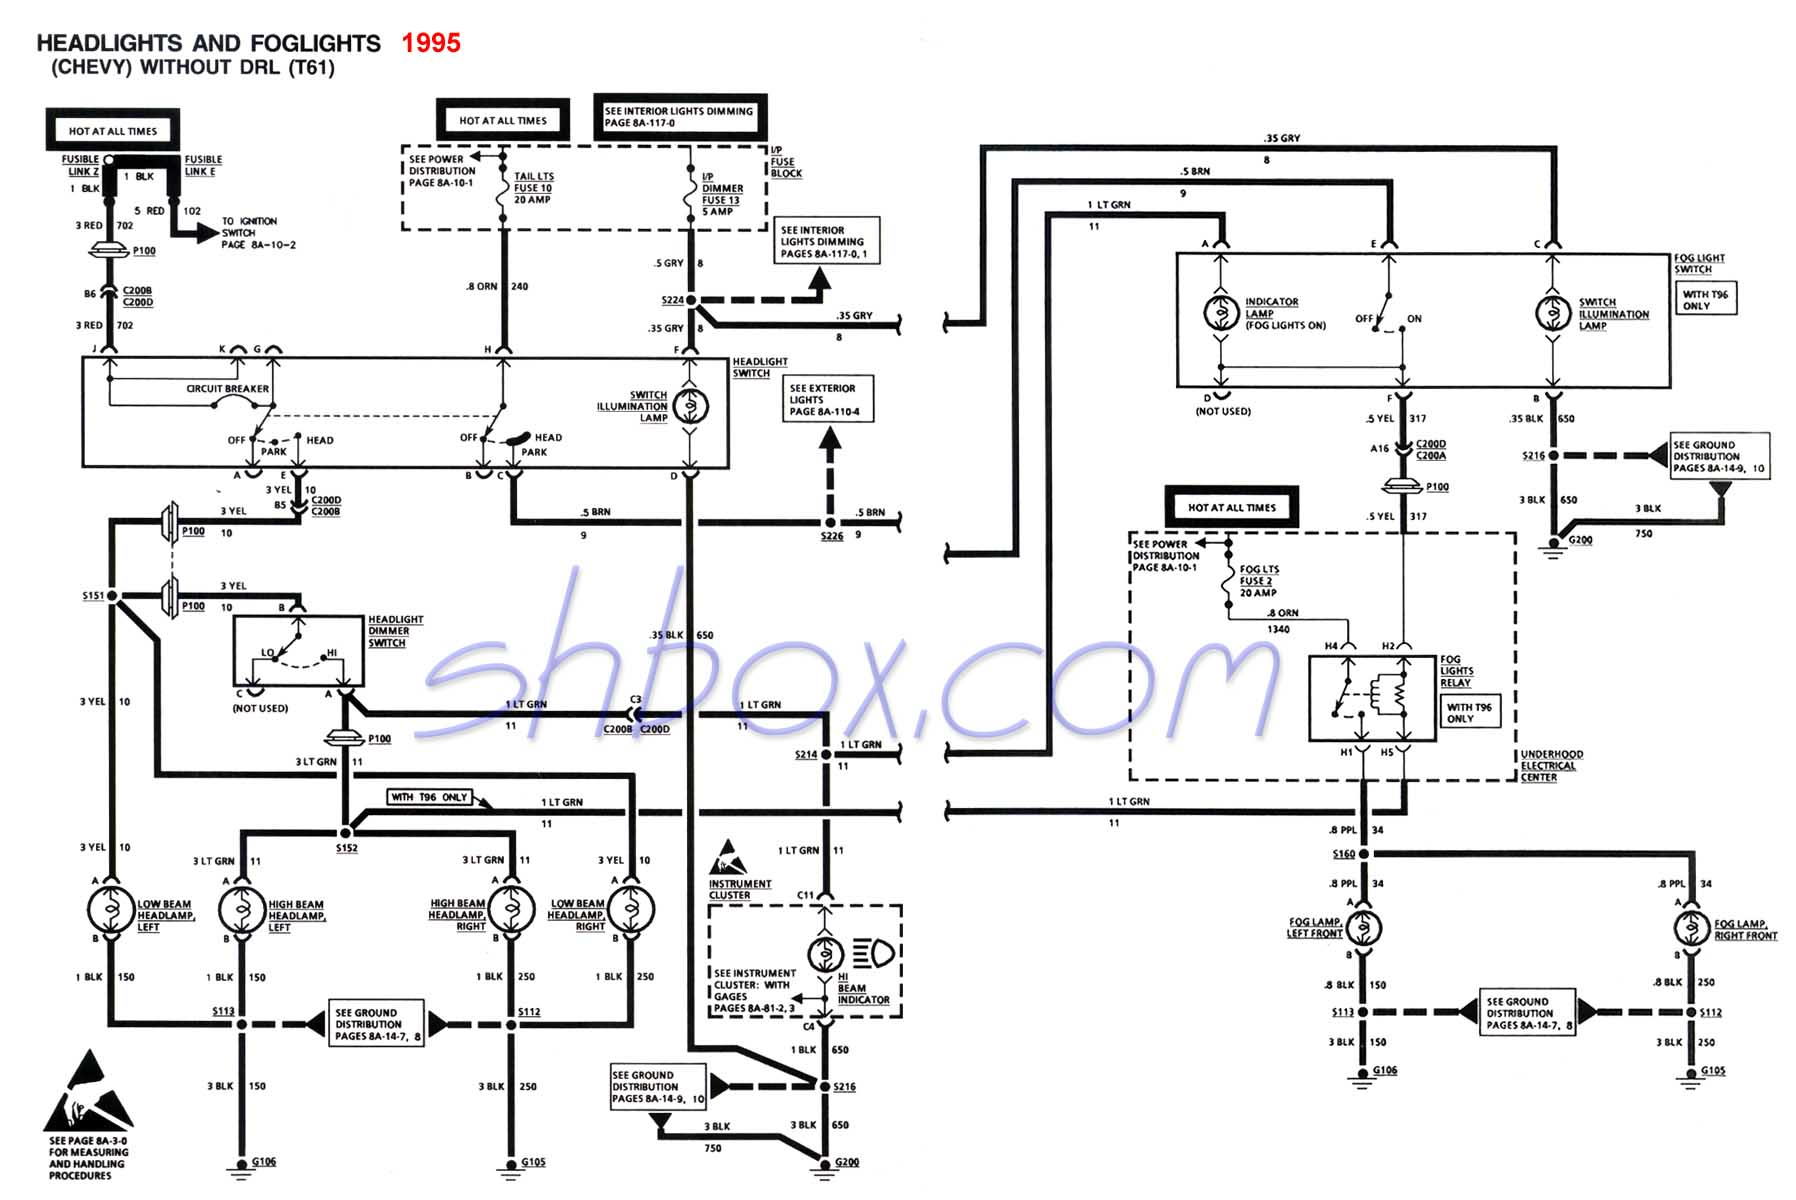 hight resolution of 1980 camaro headlight wiring diagram wiring diagram third level rh 9 18 14 jacobwinterstein com 68 camaro wiring schematic 69 camaro wiring diagram